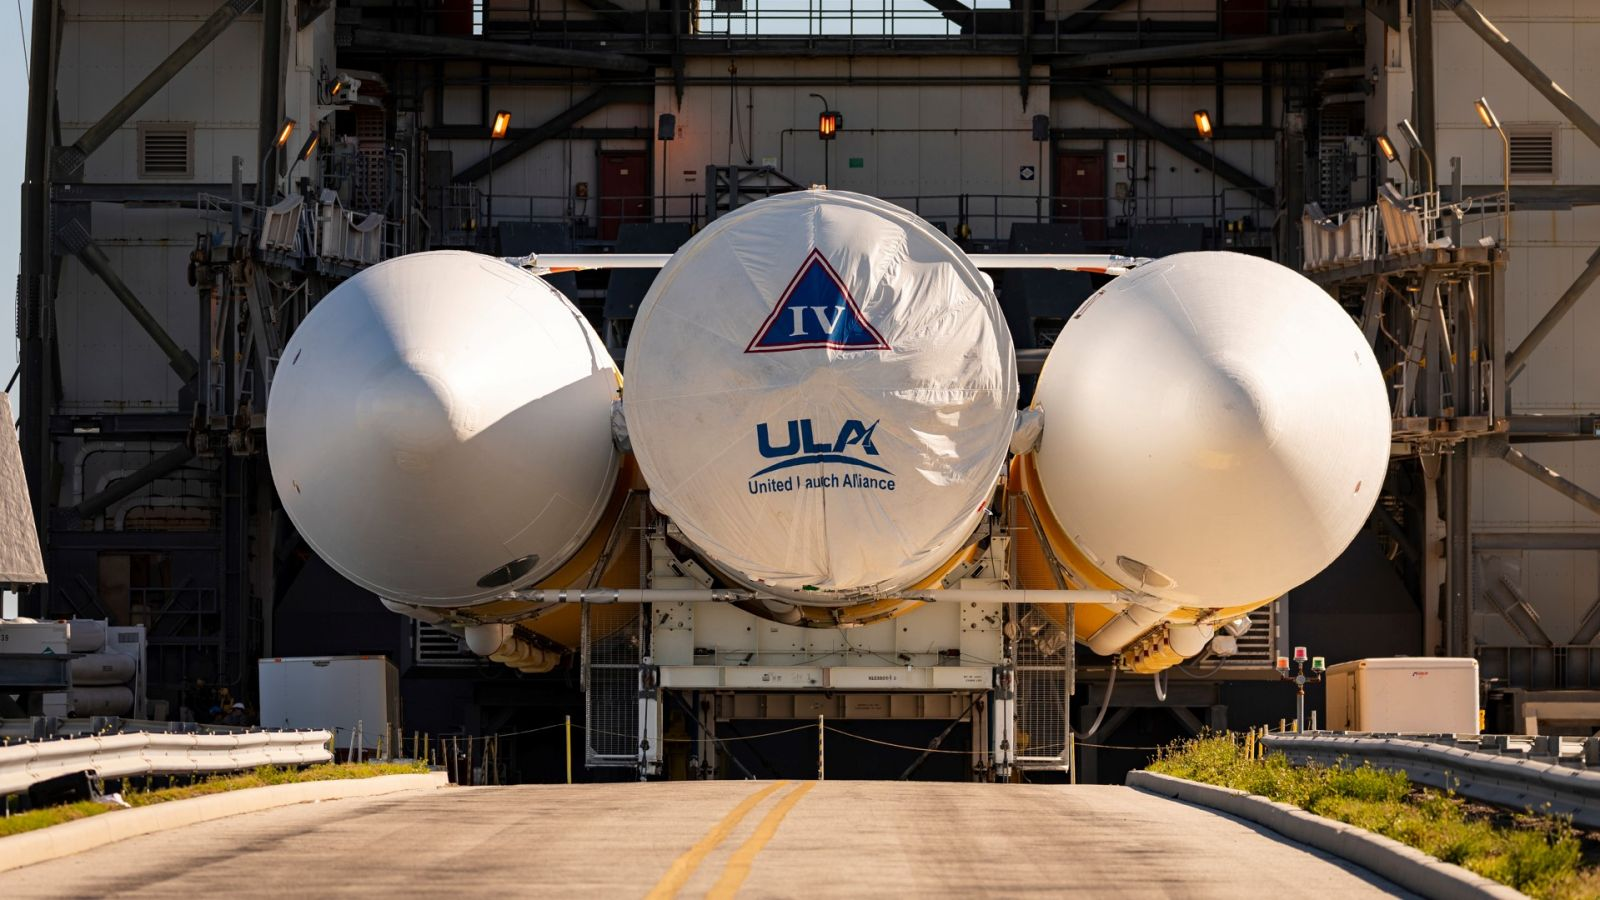 In April, ULA began stacking the Delta IV Heavy that will be used to send the Parker Solar Probe into space in July or August of 2018. Photo Credit: Ed Whiteman / Johns Hopkins APL / NASA